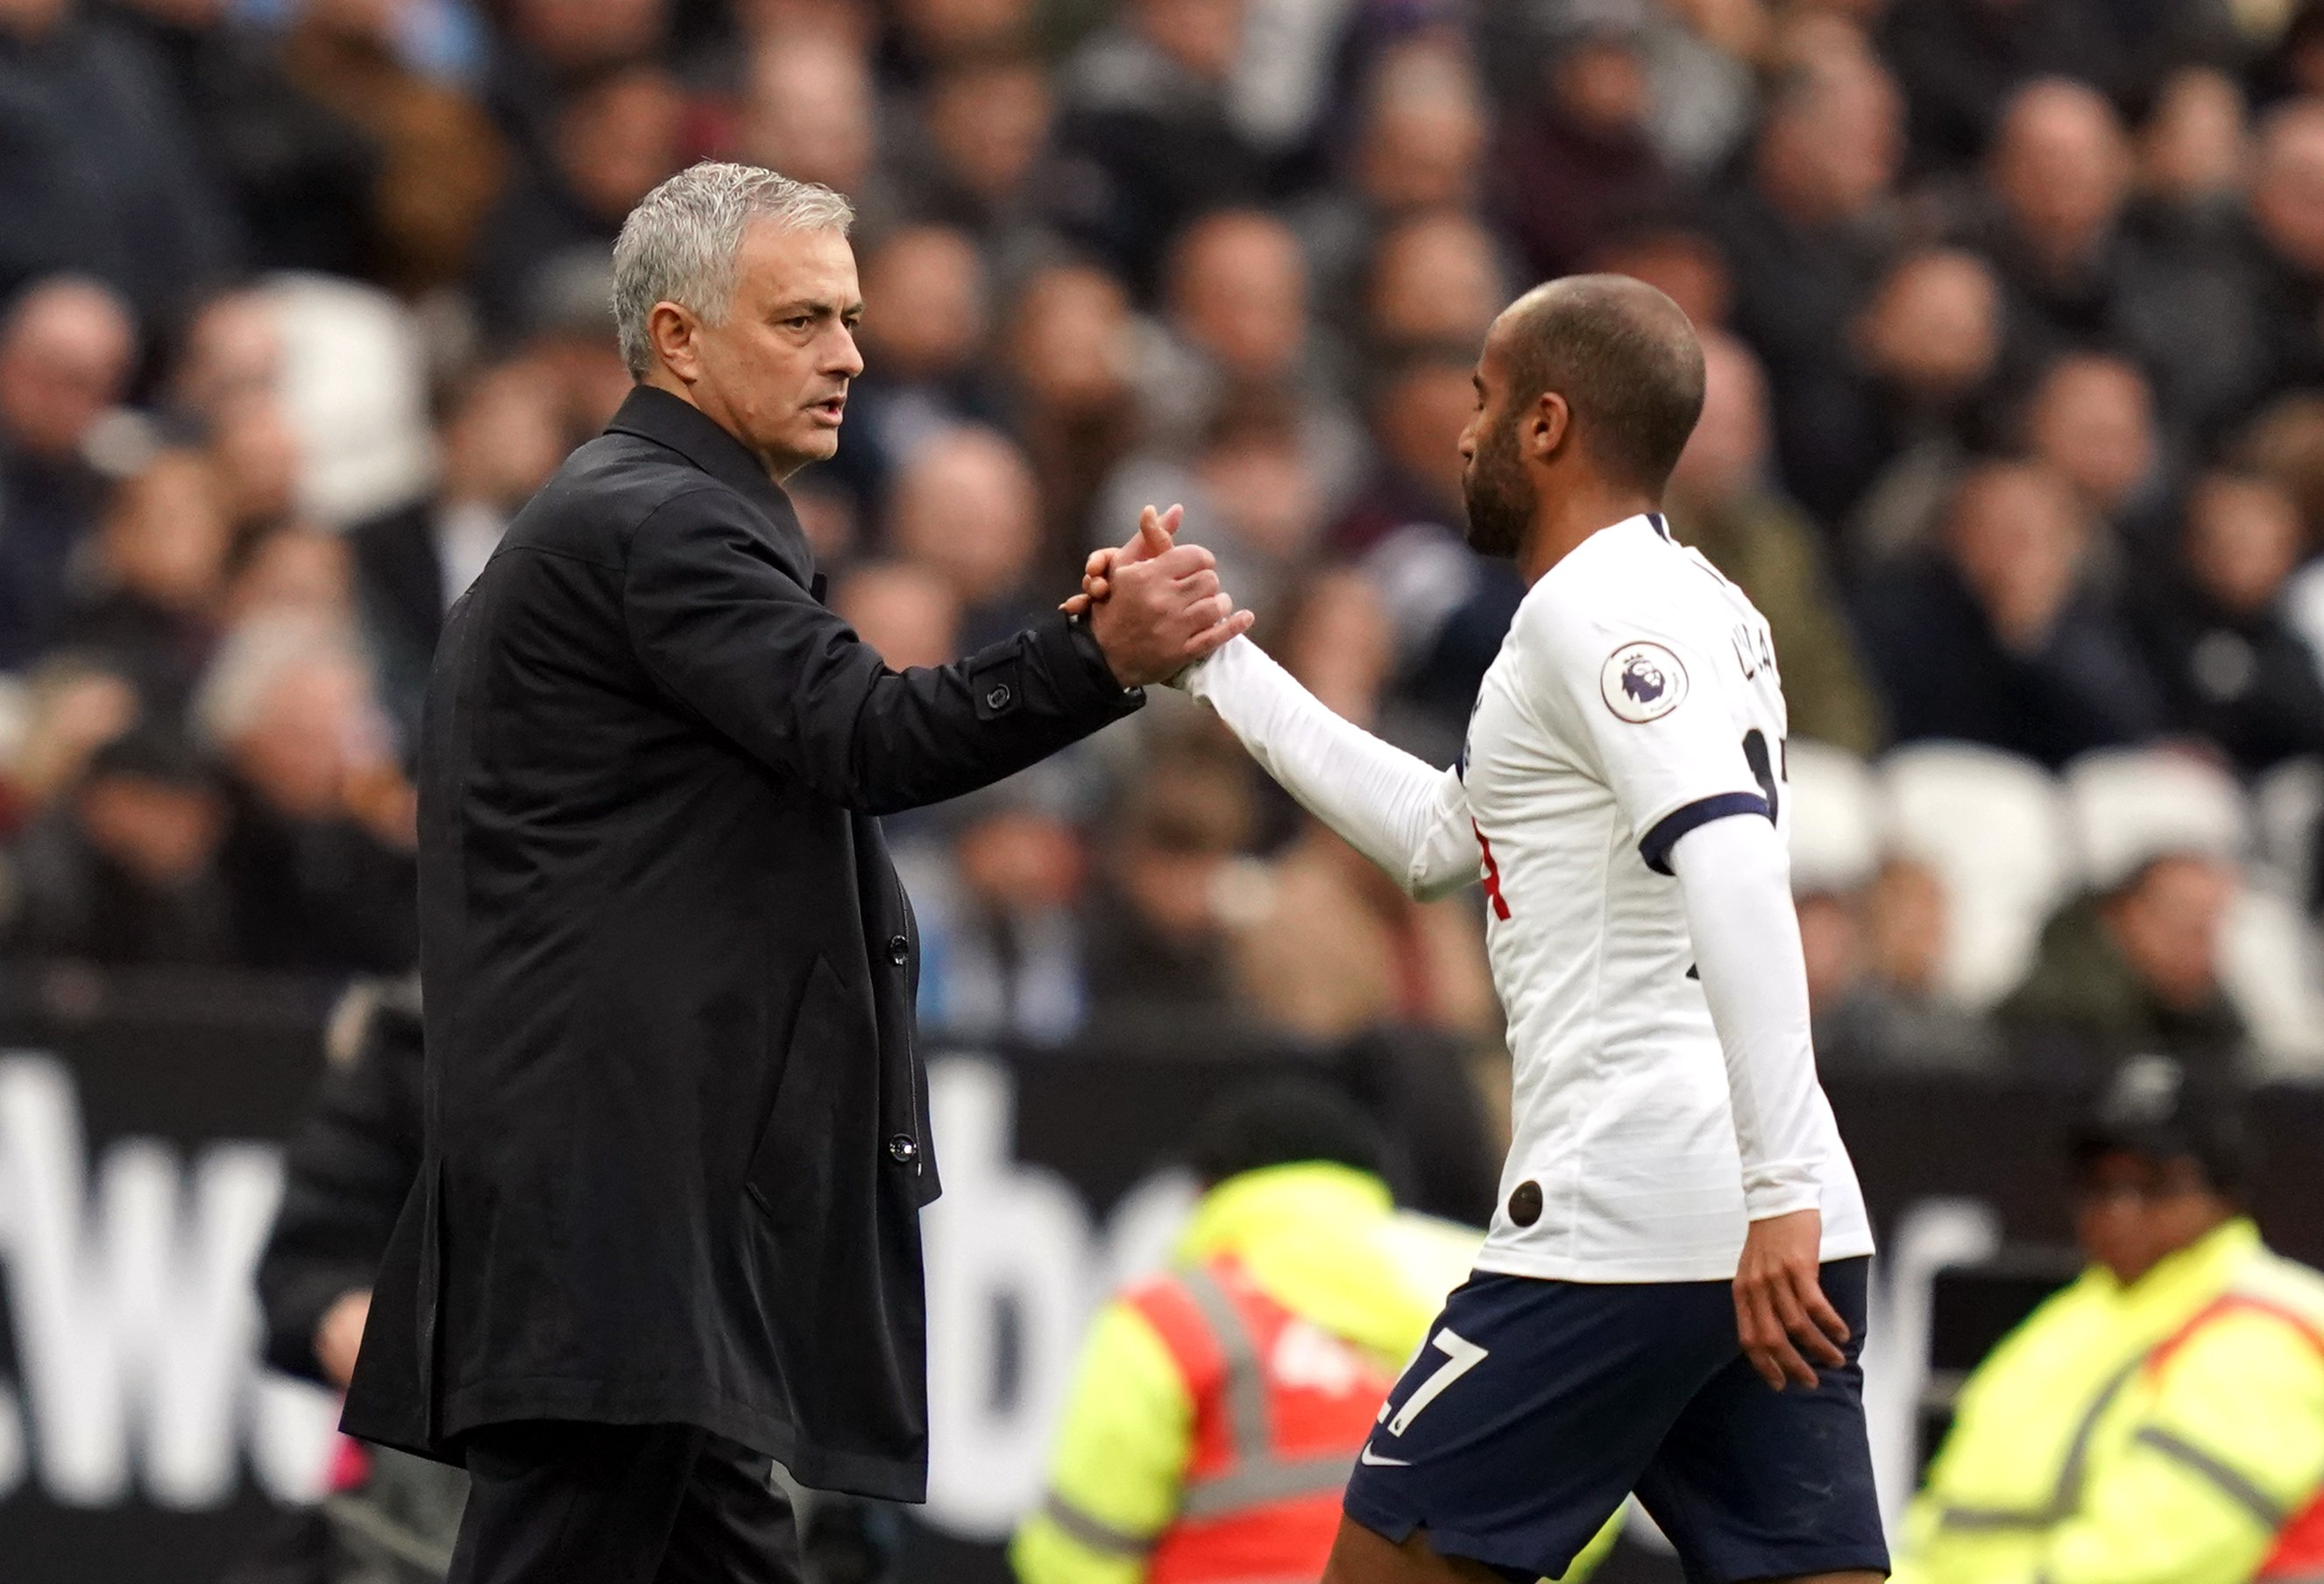 Lucas Moura says 'winner' Mourinho is man to end Tottenham's trophy drought